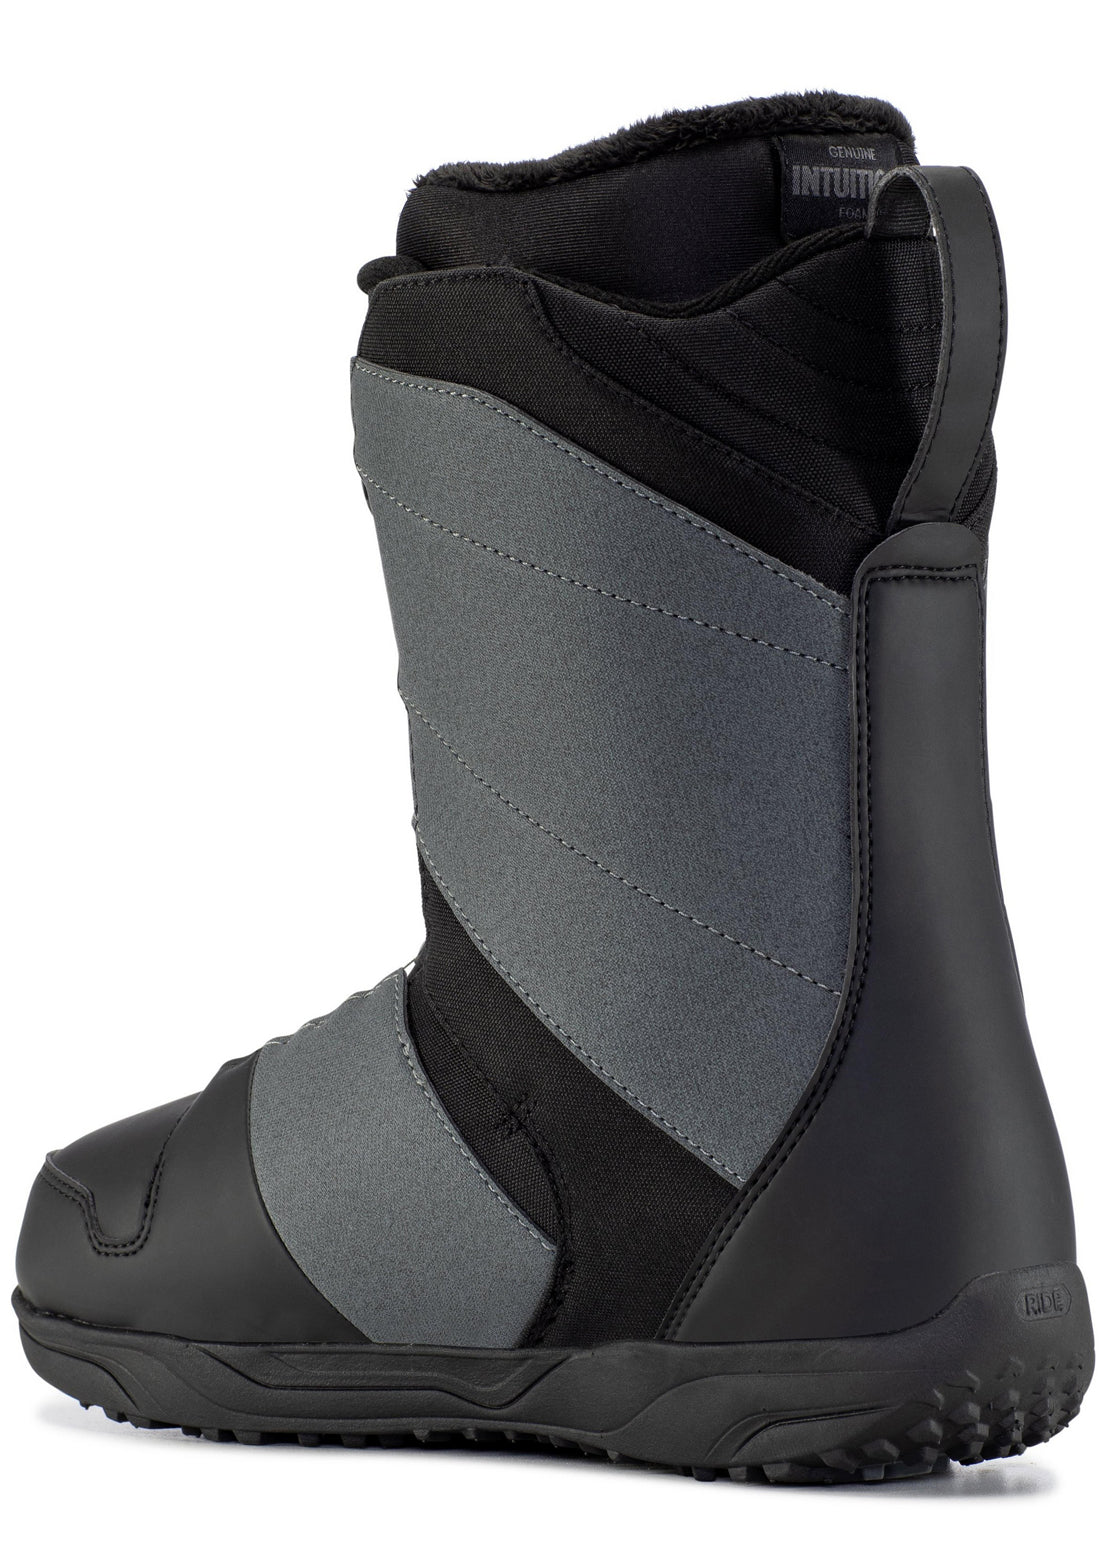 Ride Men's Anthem Snowboard Boots Grey